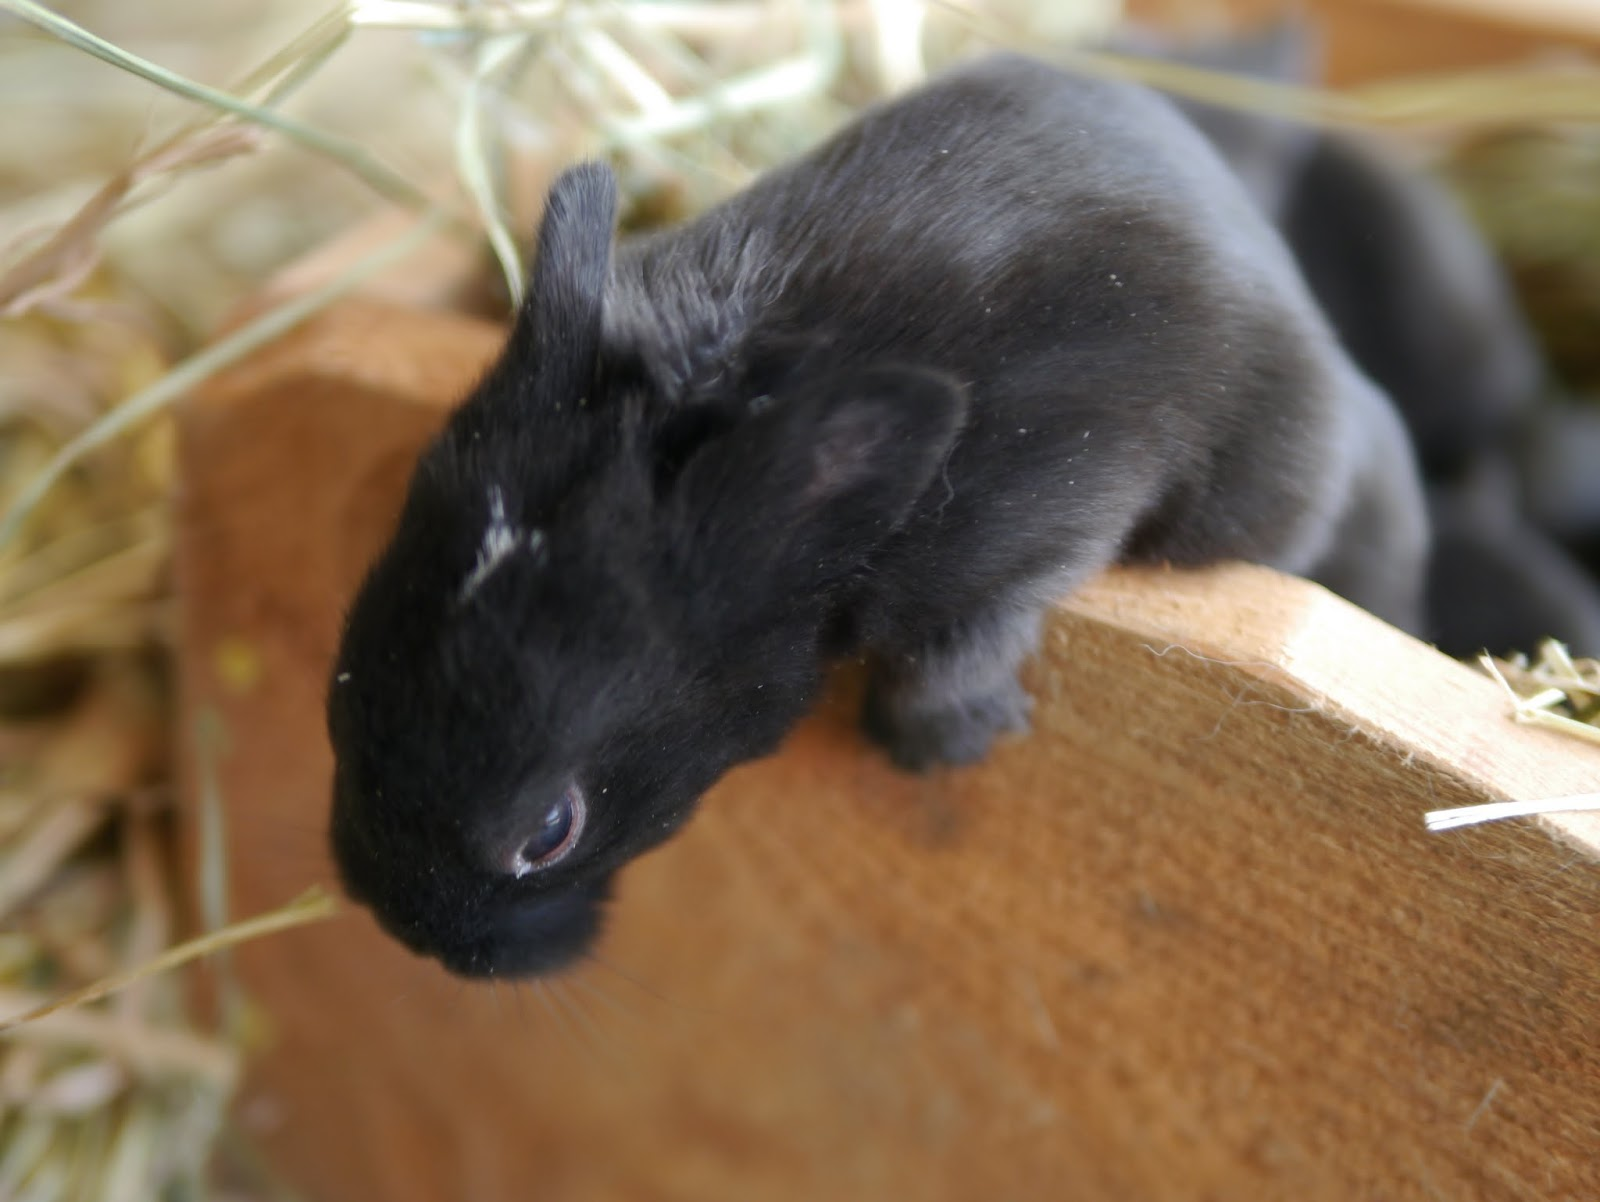 Preventing Nest Box Eye Infections in Baby Rabbits